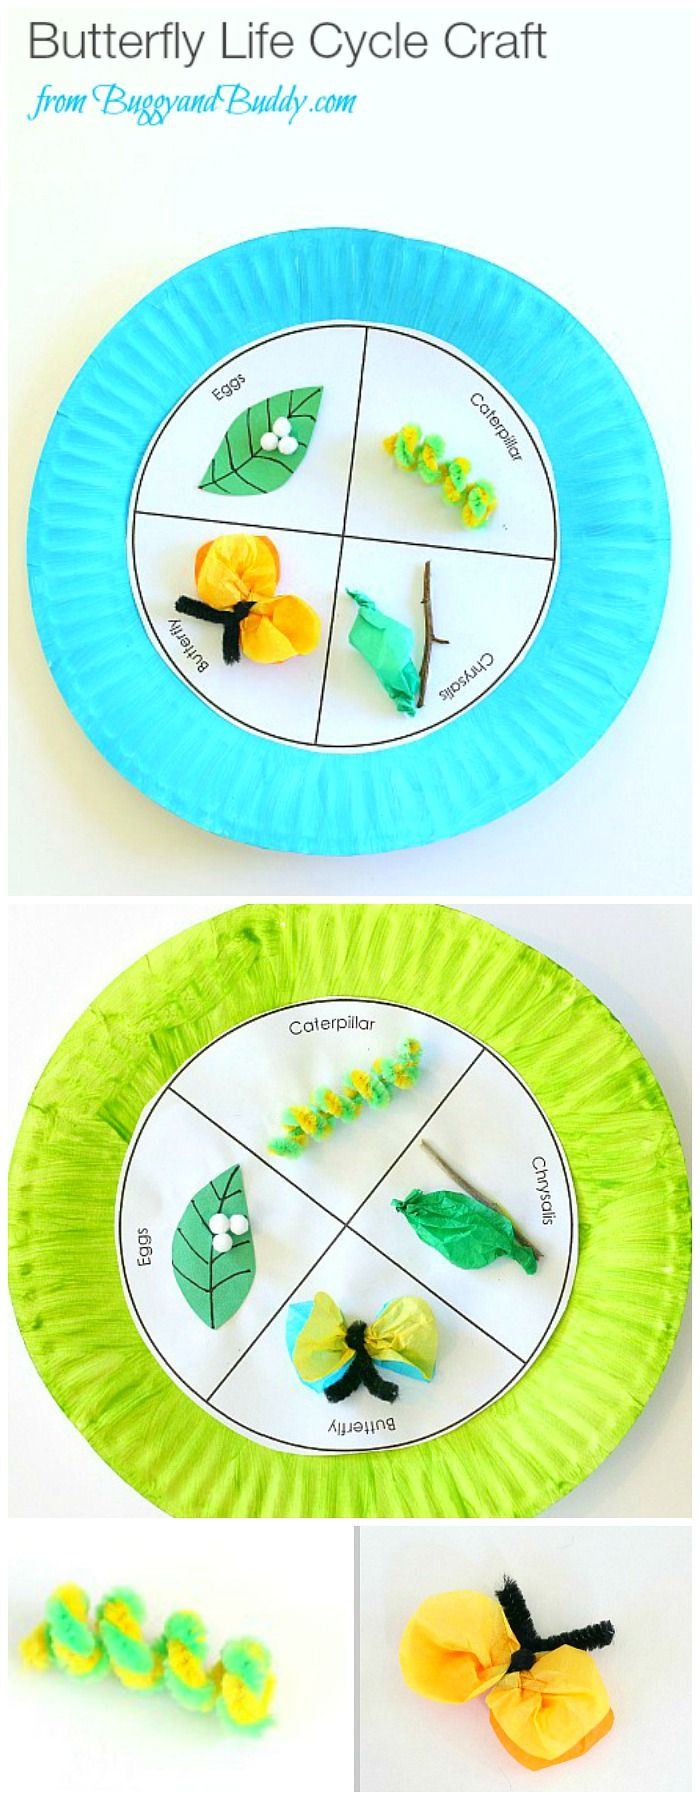 Butterfly Life Cycle Paper Plate CraftBuggy and Buddy